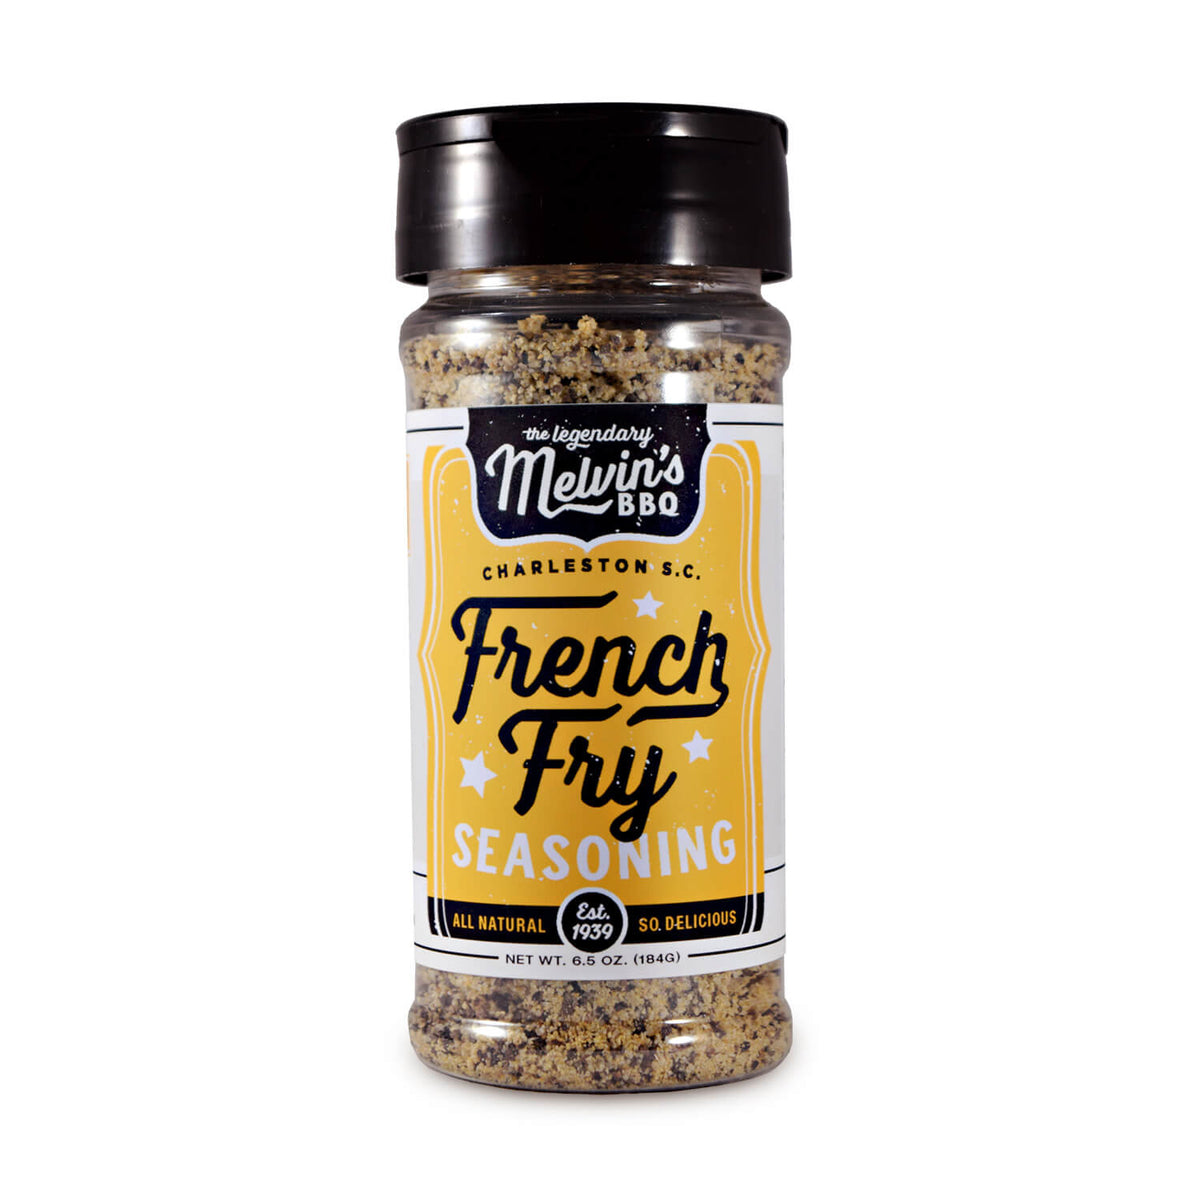 melvin's french fry seasoning